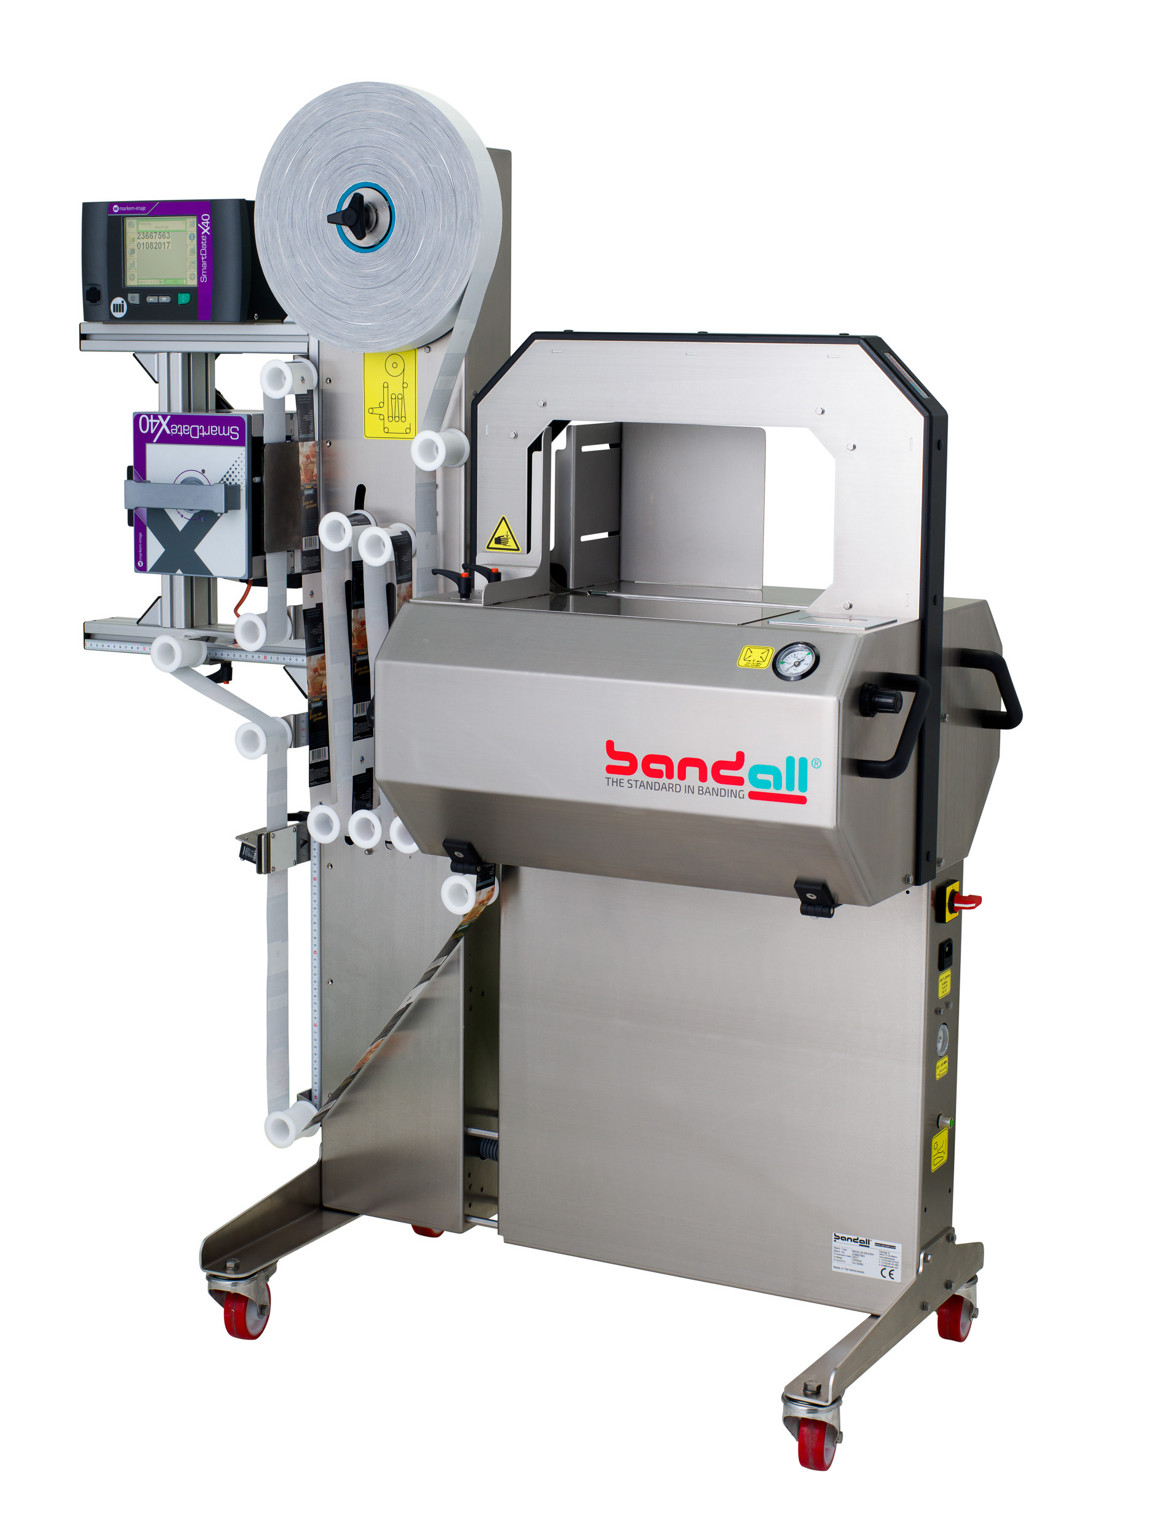 Banding-Bandall-machine